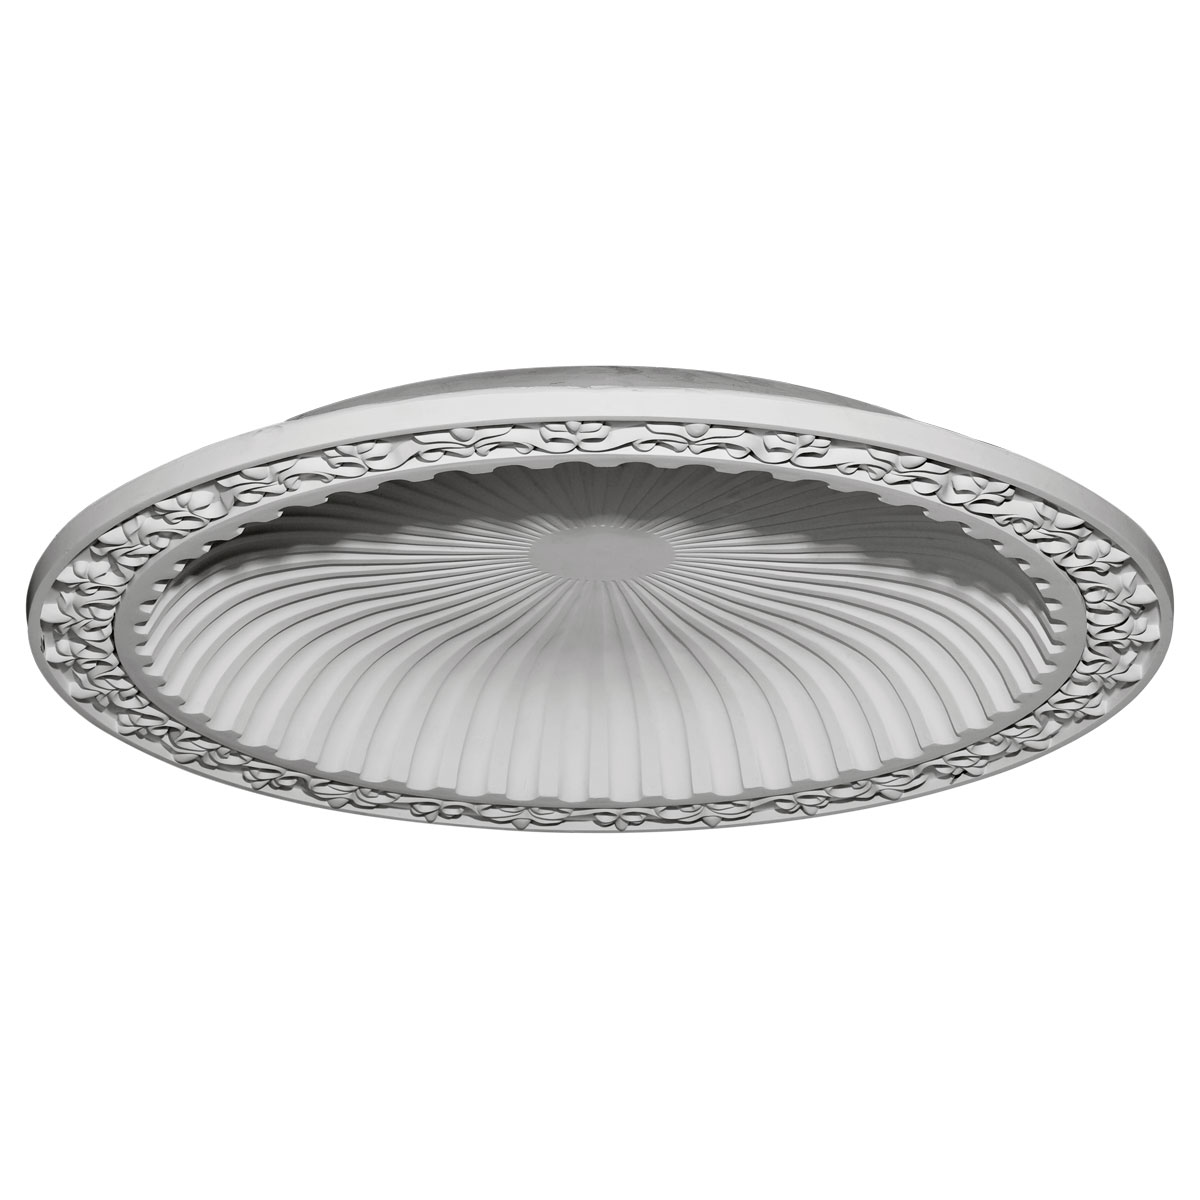 """DOME47MI 47""""OD x 38-3/8""""ID x 5-1/4""""D Milton Recessed Mount Ceiling Dome (41"""" Diameter x 4-5/8""""D Rough Opening)"""